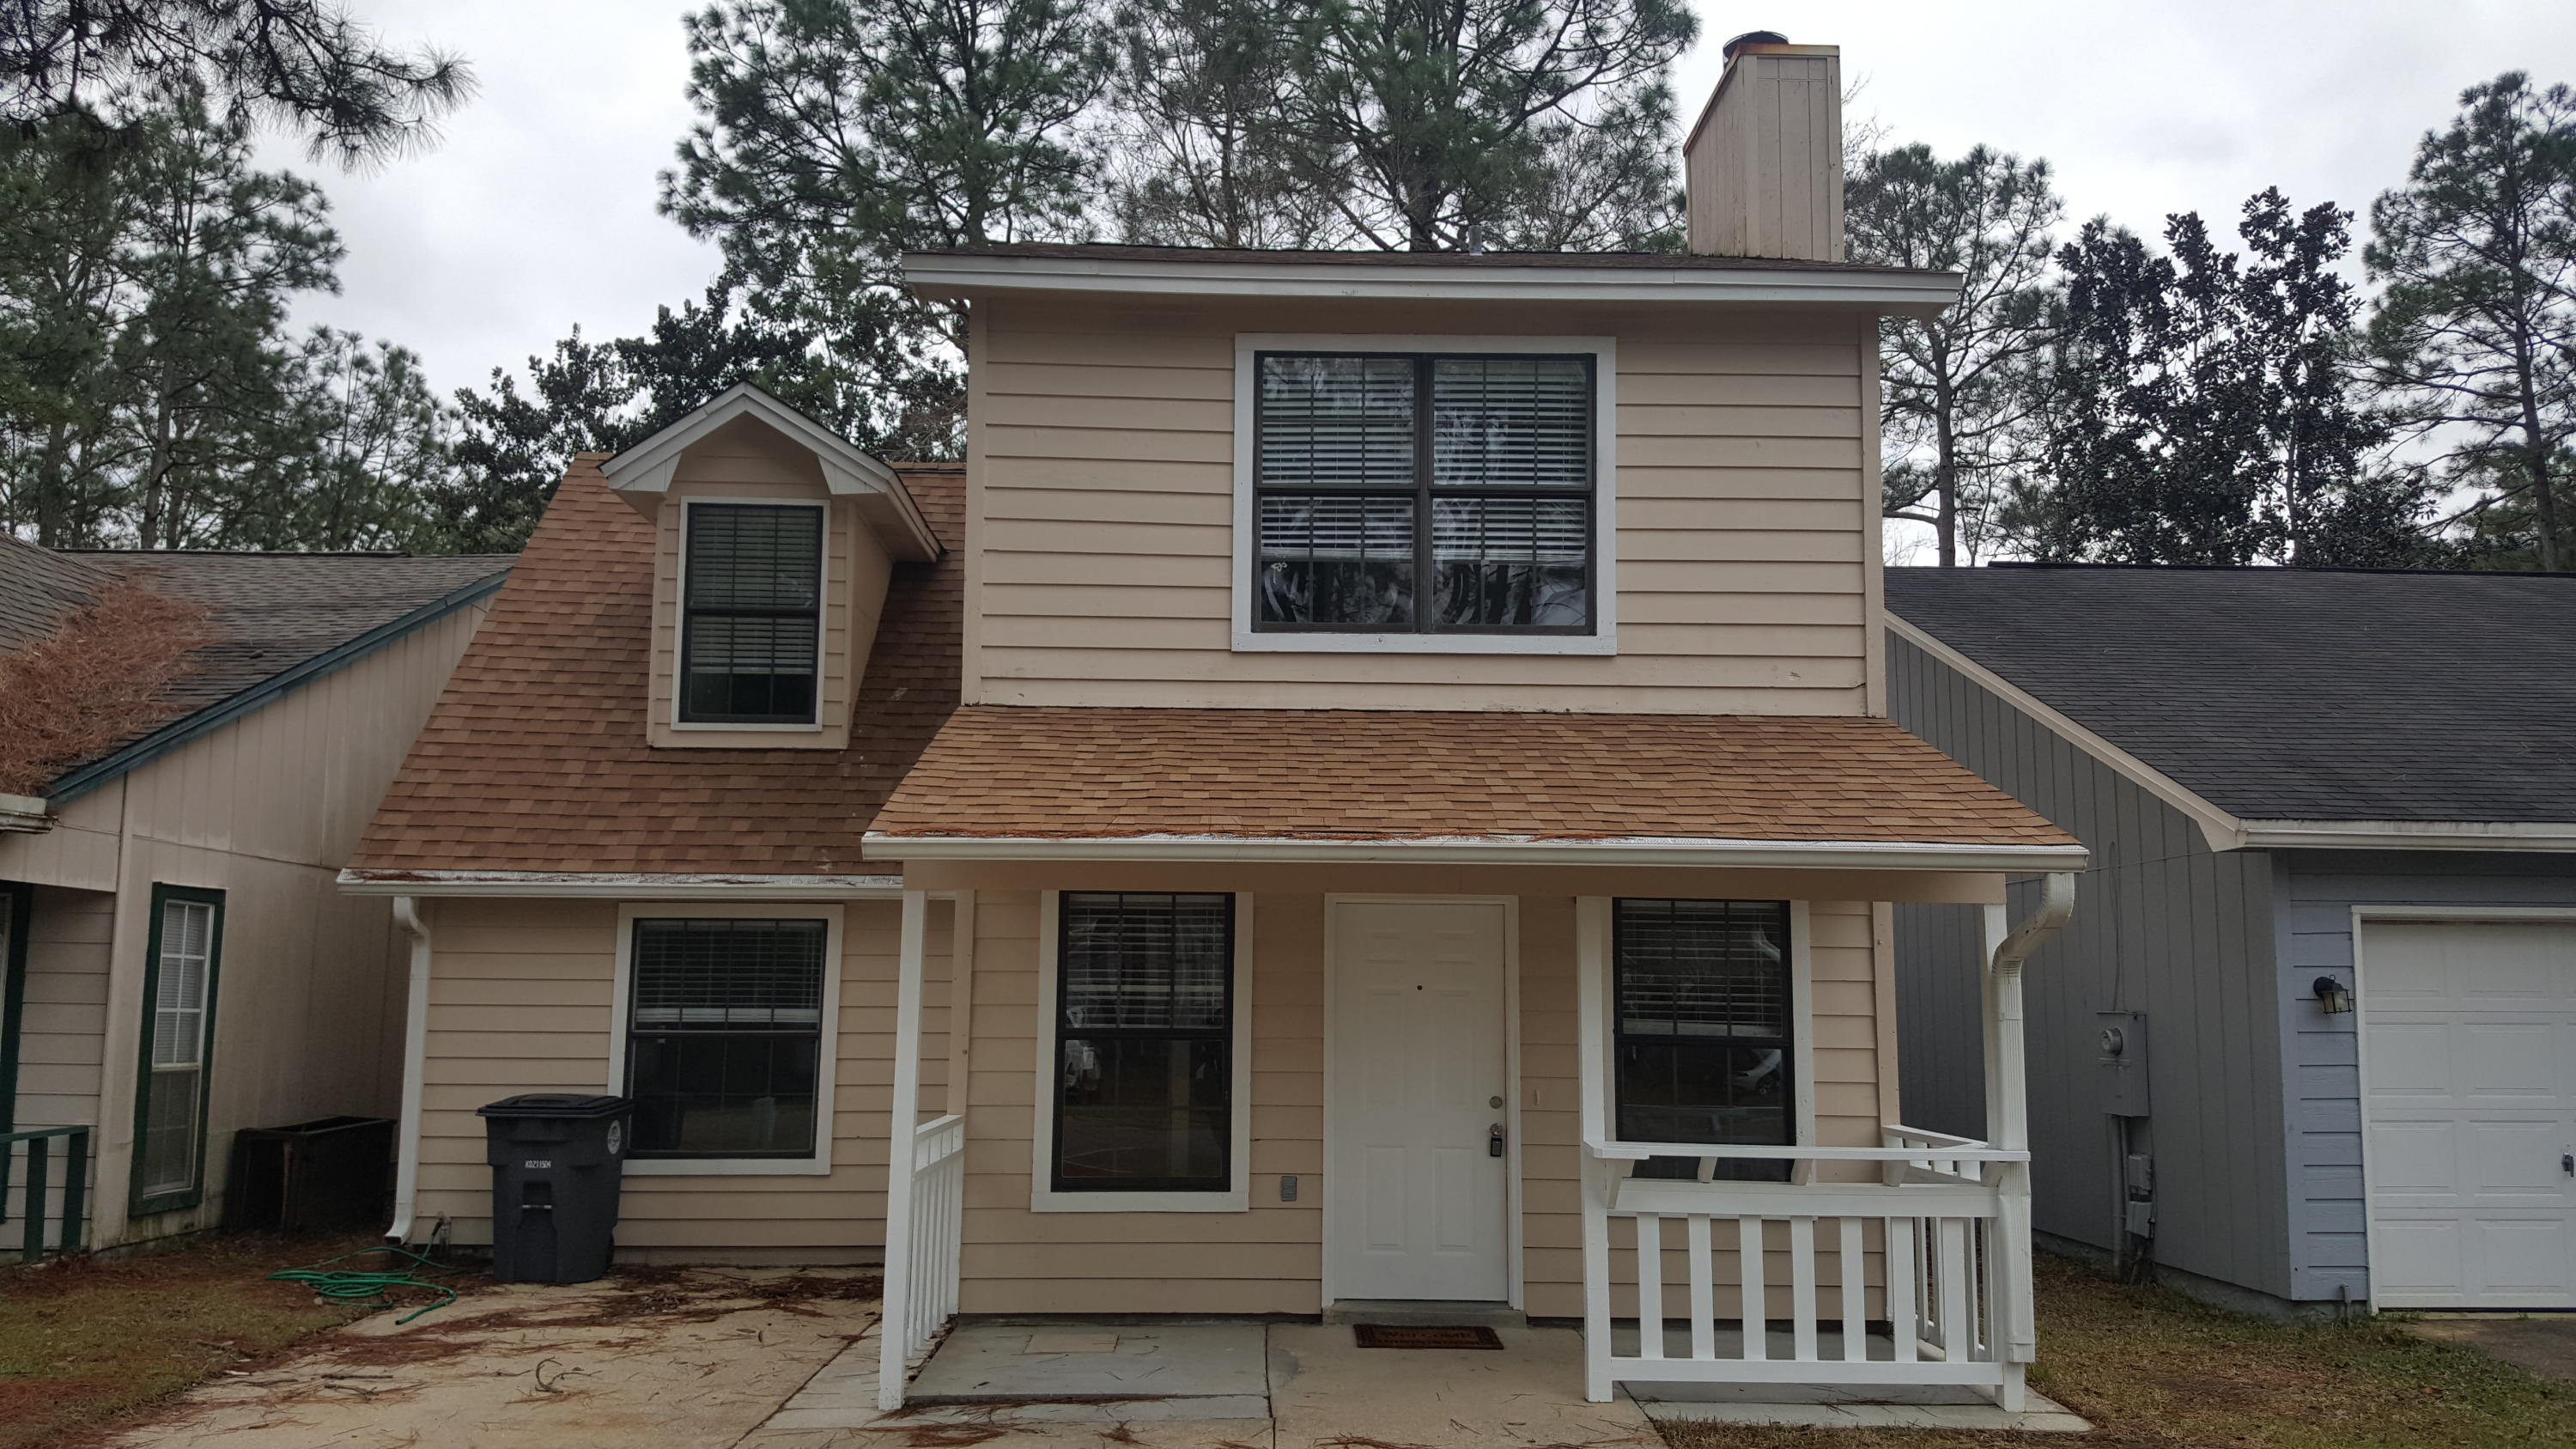 23  Kelly Way, Valparaiso, Florida 4 Bedroom as one of Homes & Land Real Estate